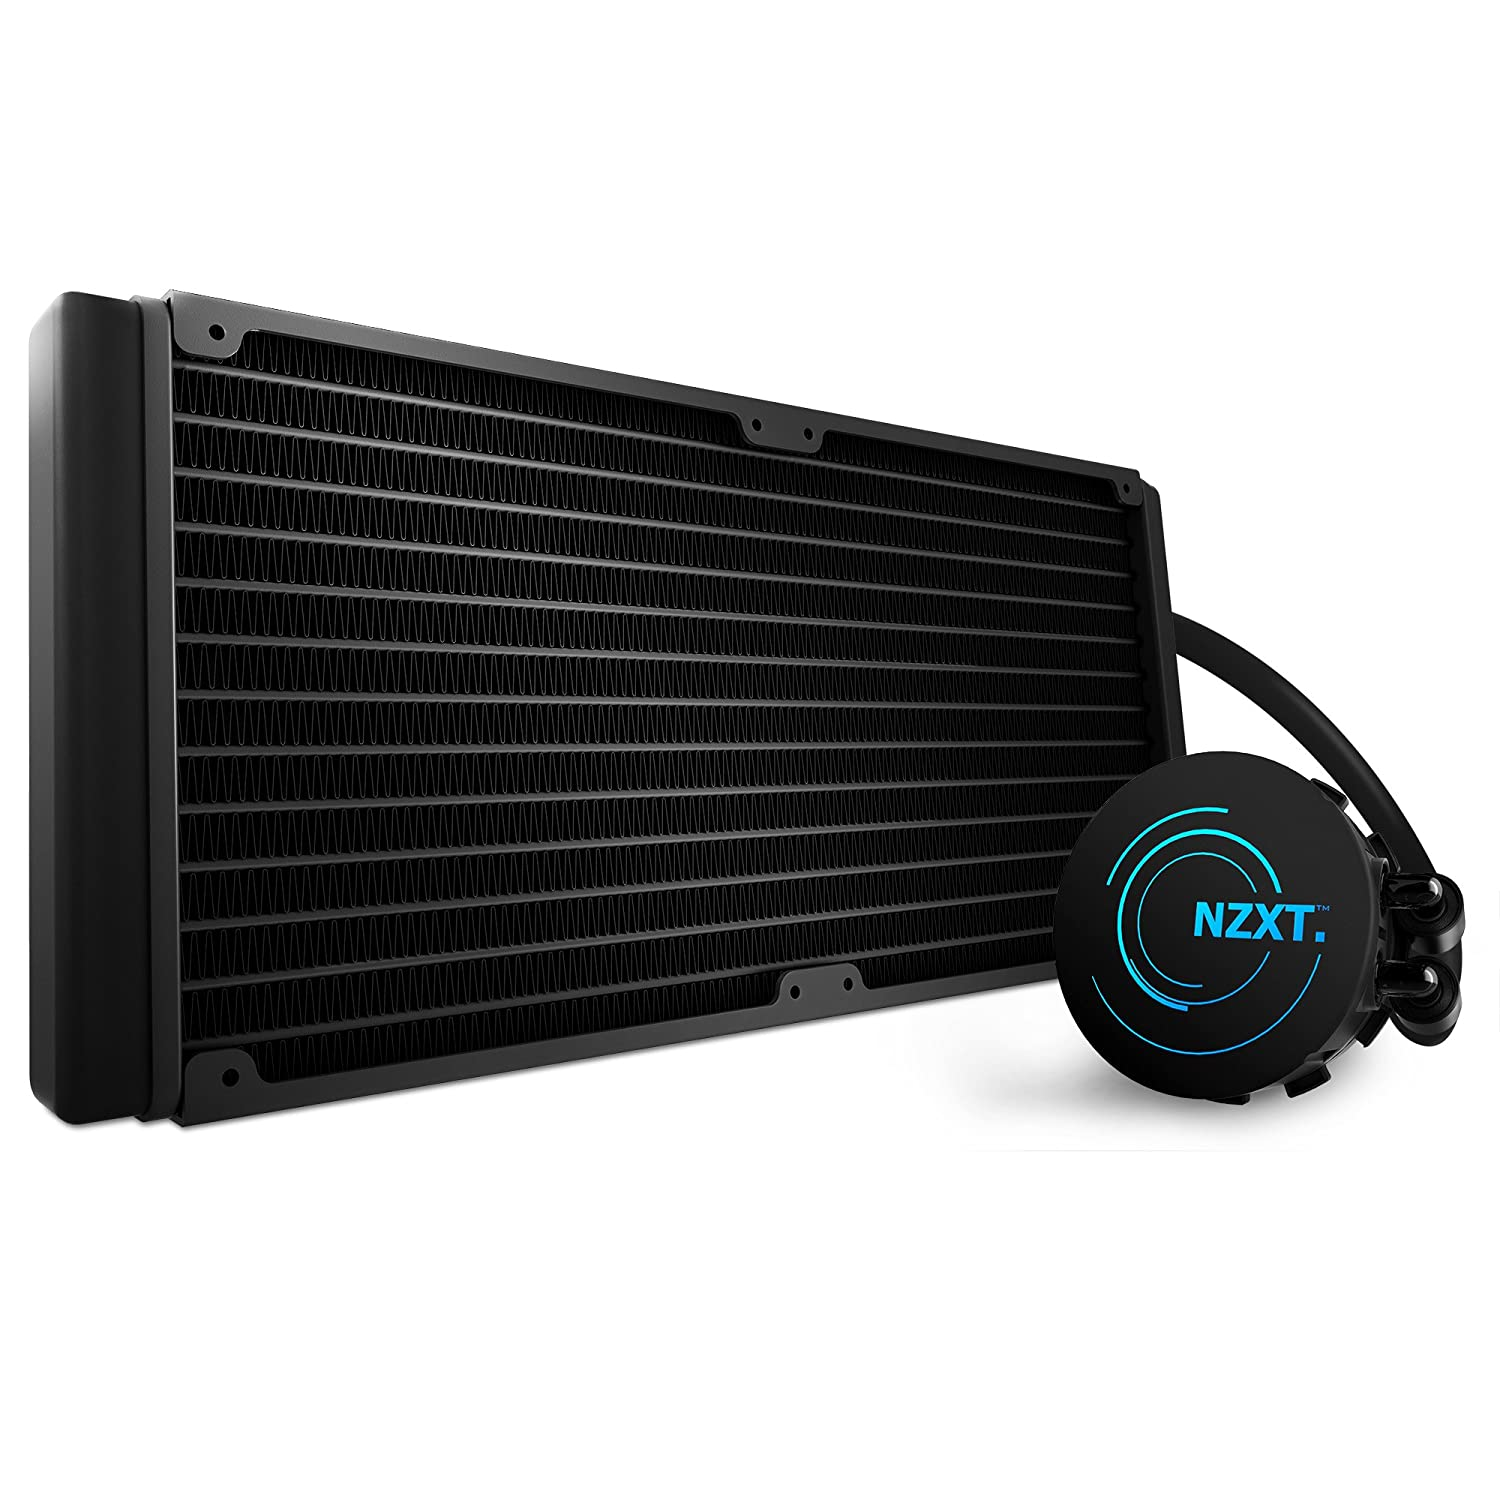 Amazon.com: NZXT Kraken X61 280mm All-in-One CPU Liquid Cooling System  (RL-KRX61-01): Computers & Accessories